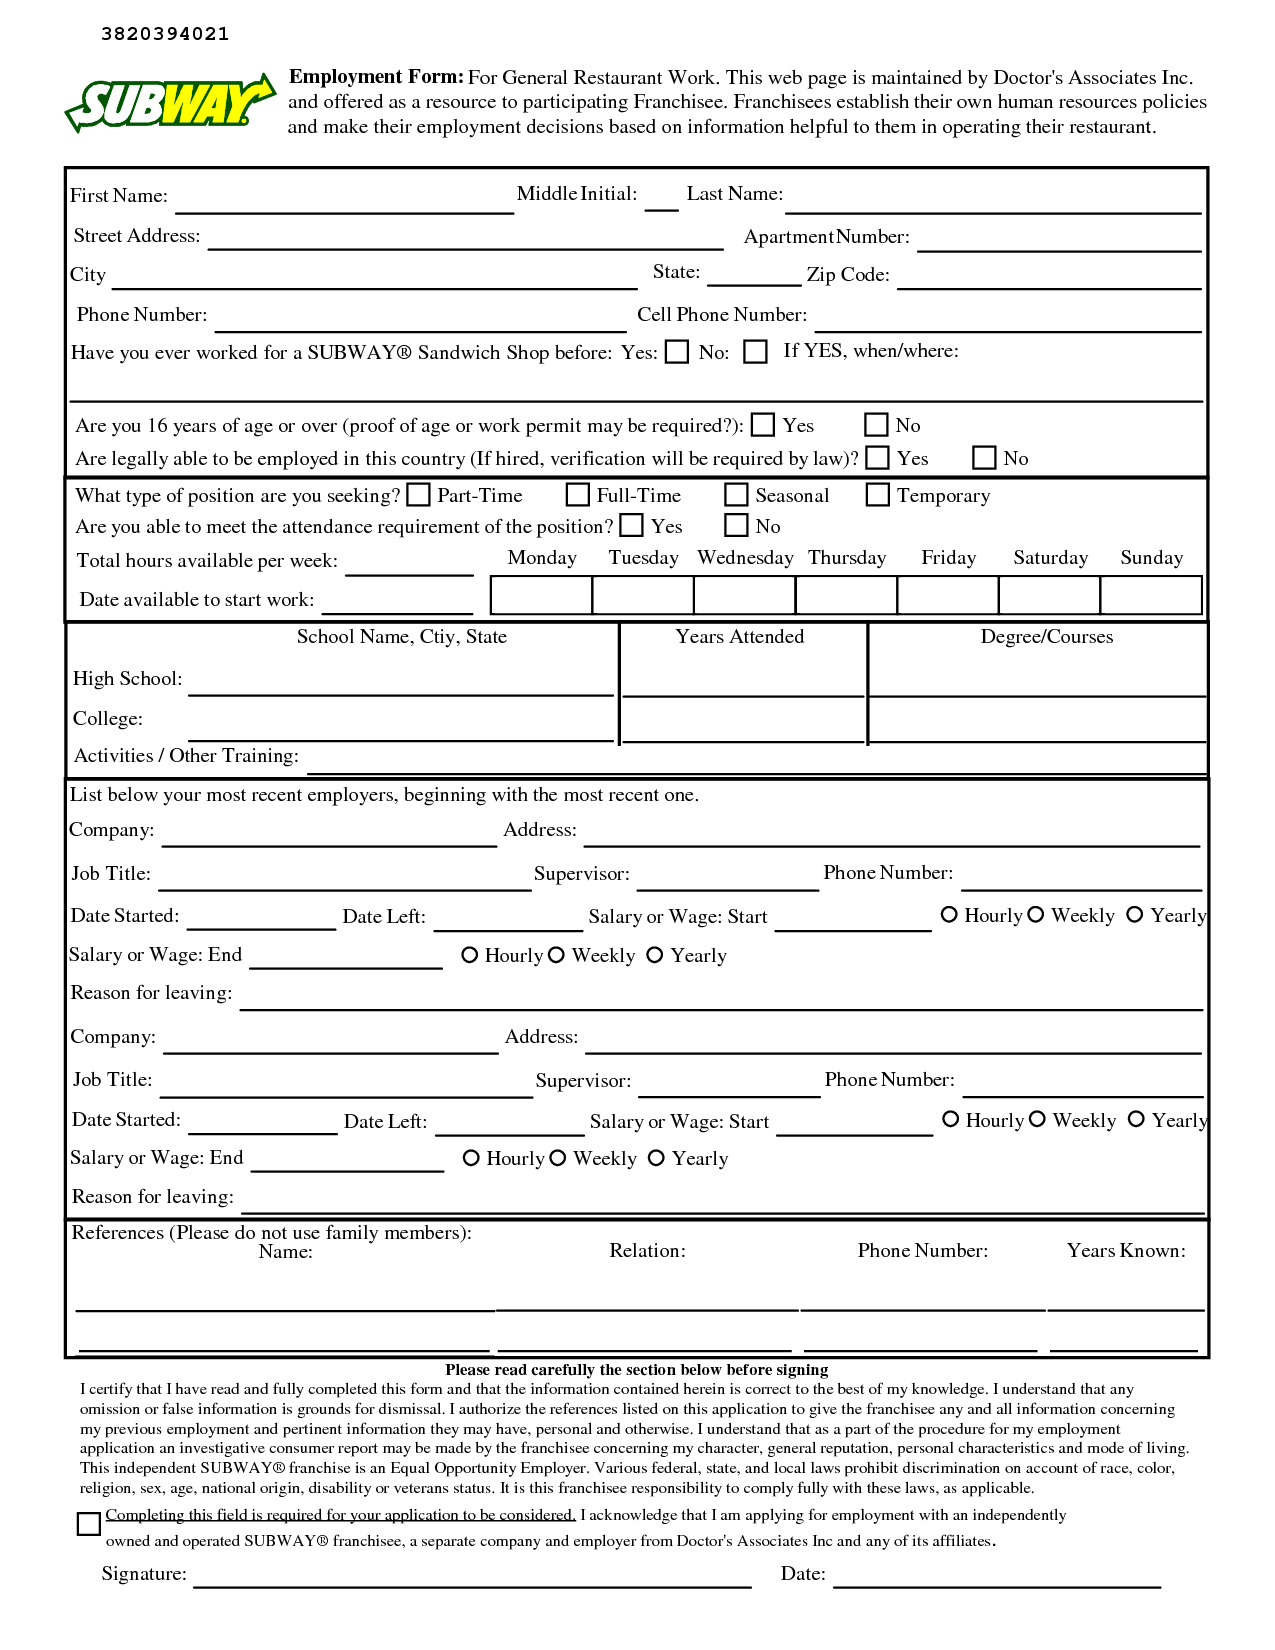 Subway Job Application Pdf